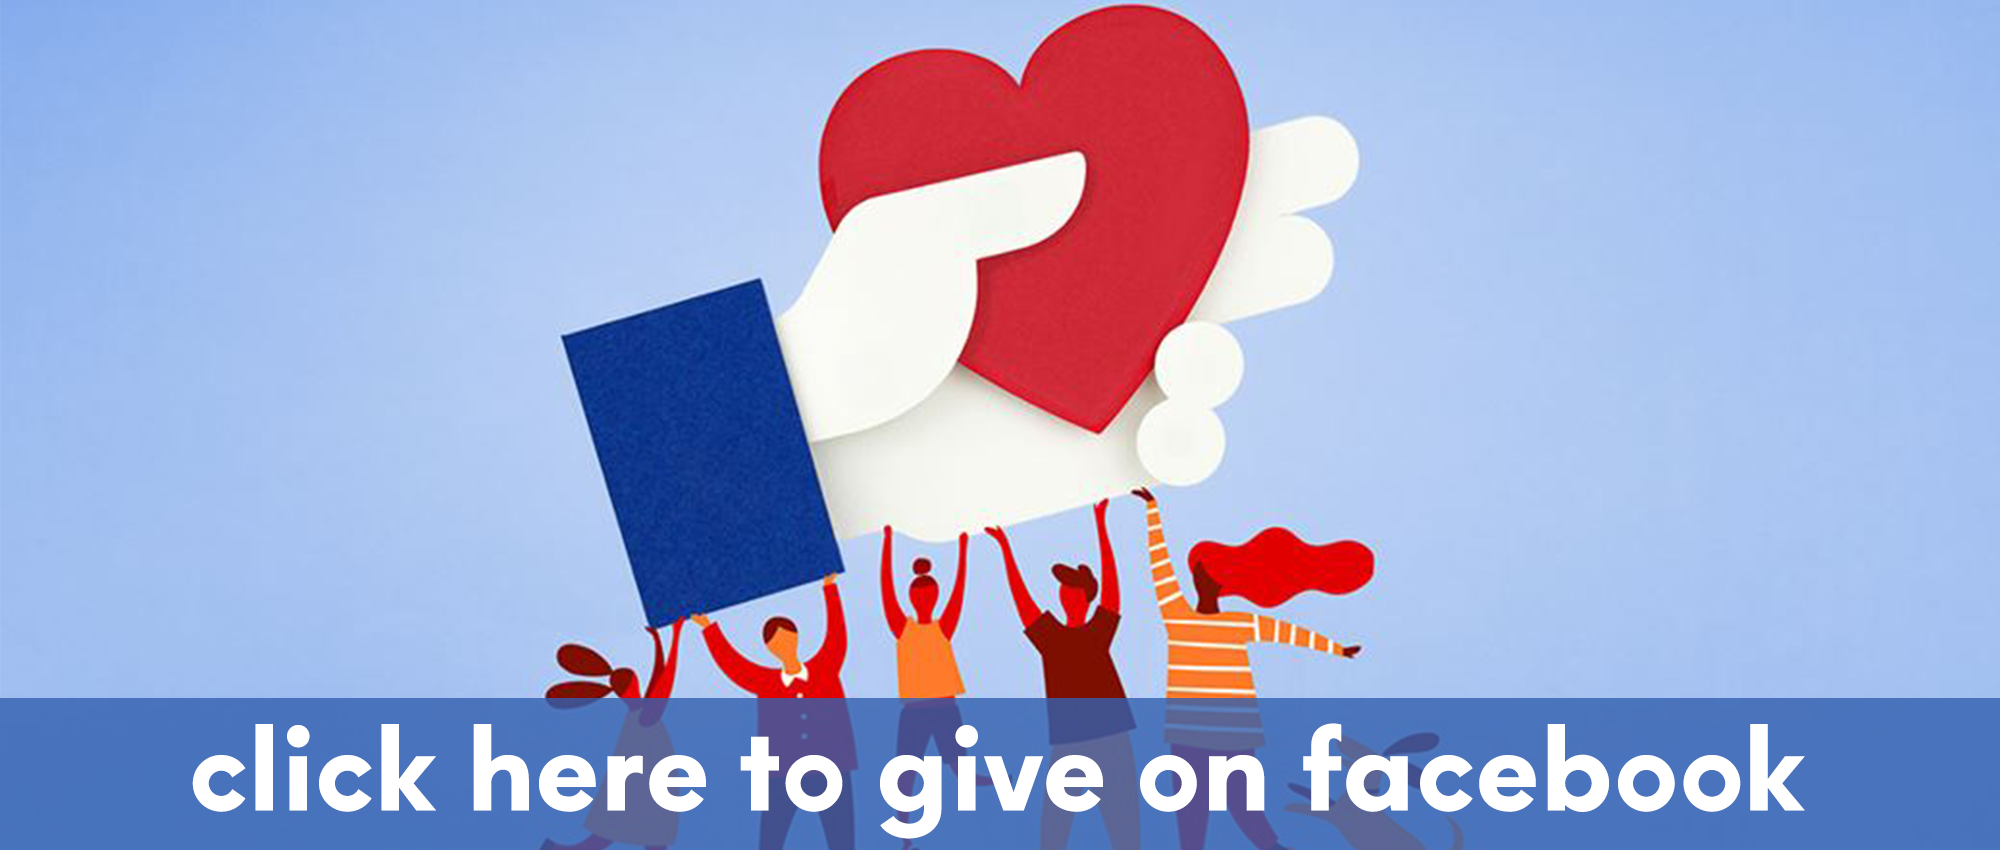 FB-Giving-Web-Banner